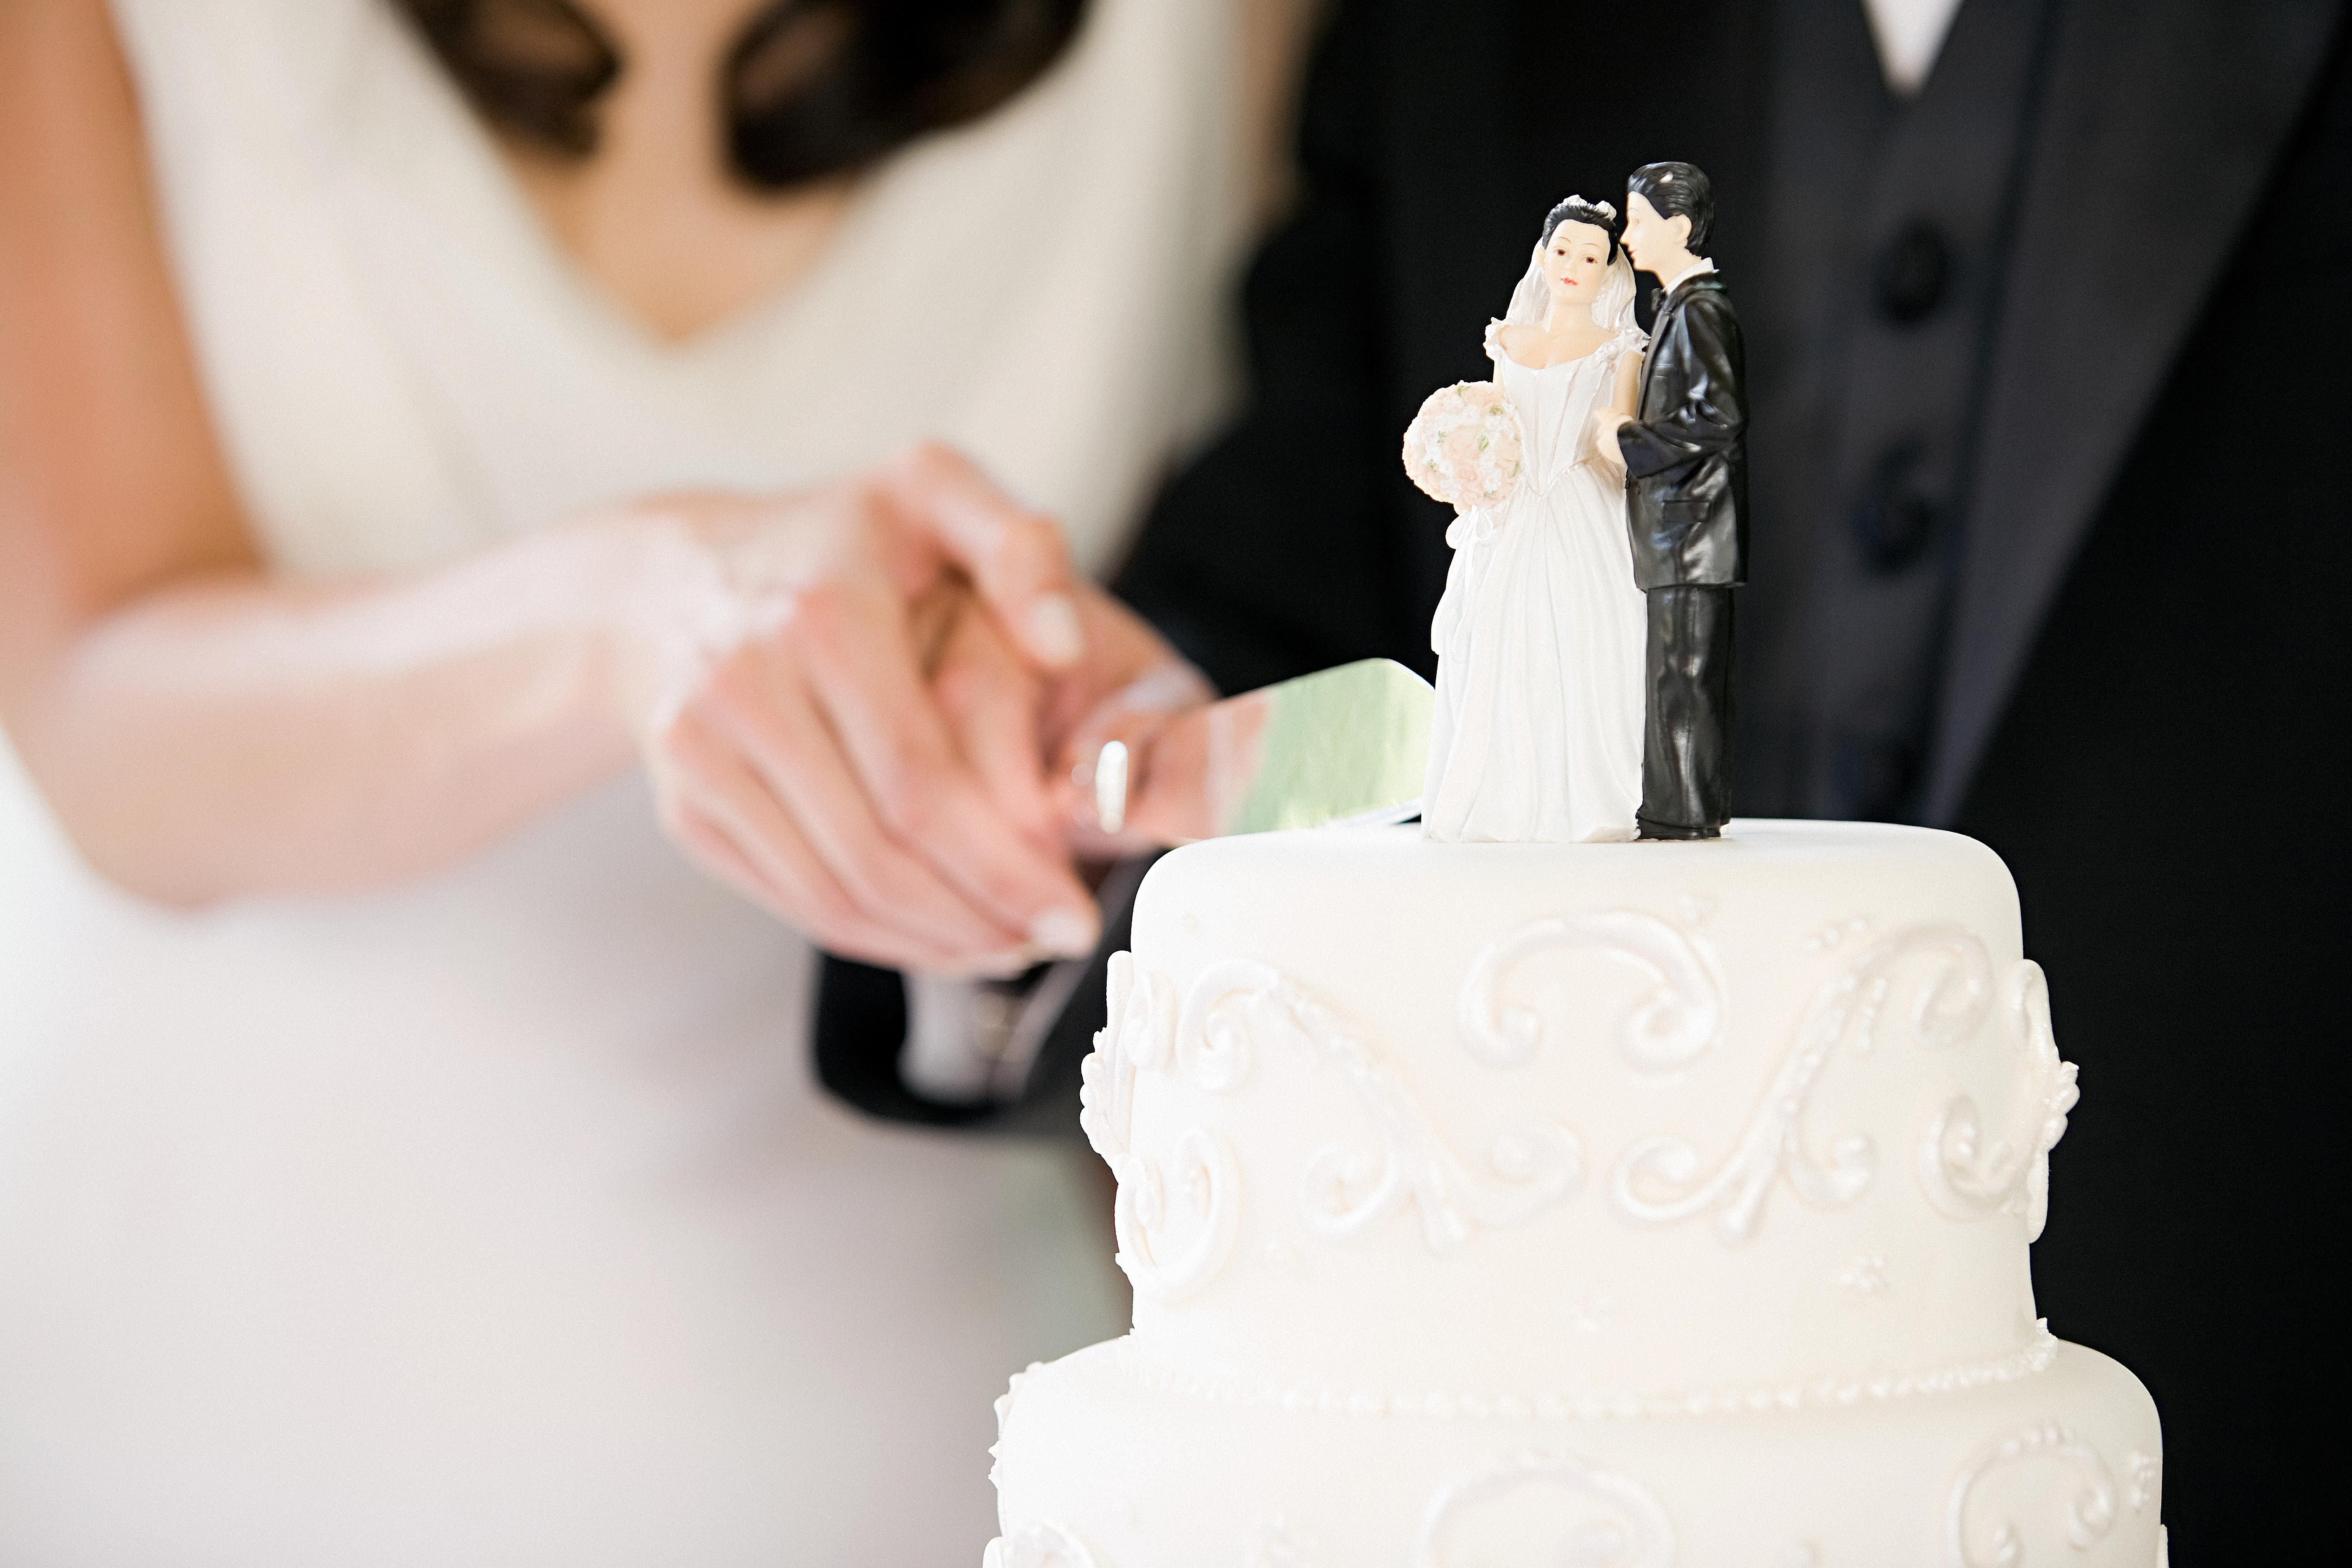 how do i cut a wedding cake 7 wedding cake traditions and their meanings 15368